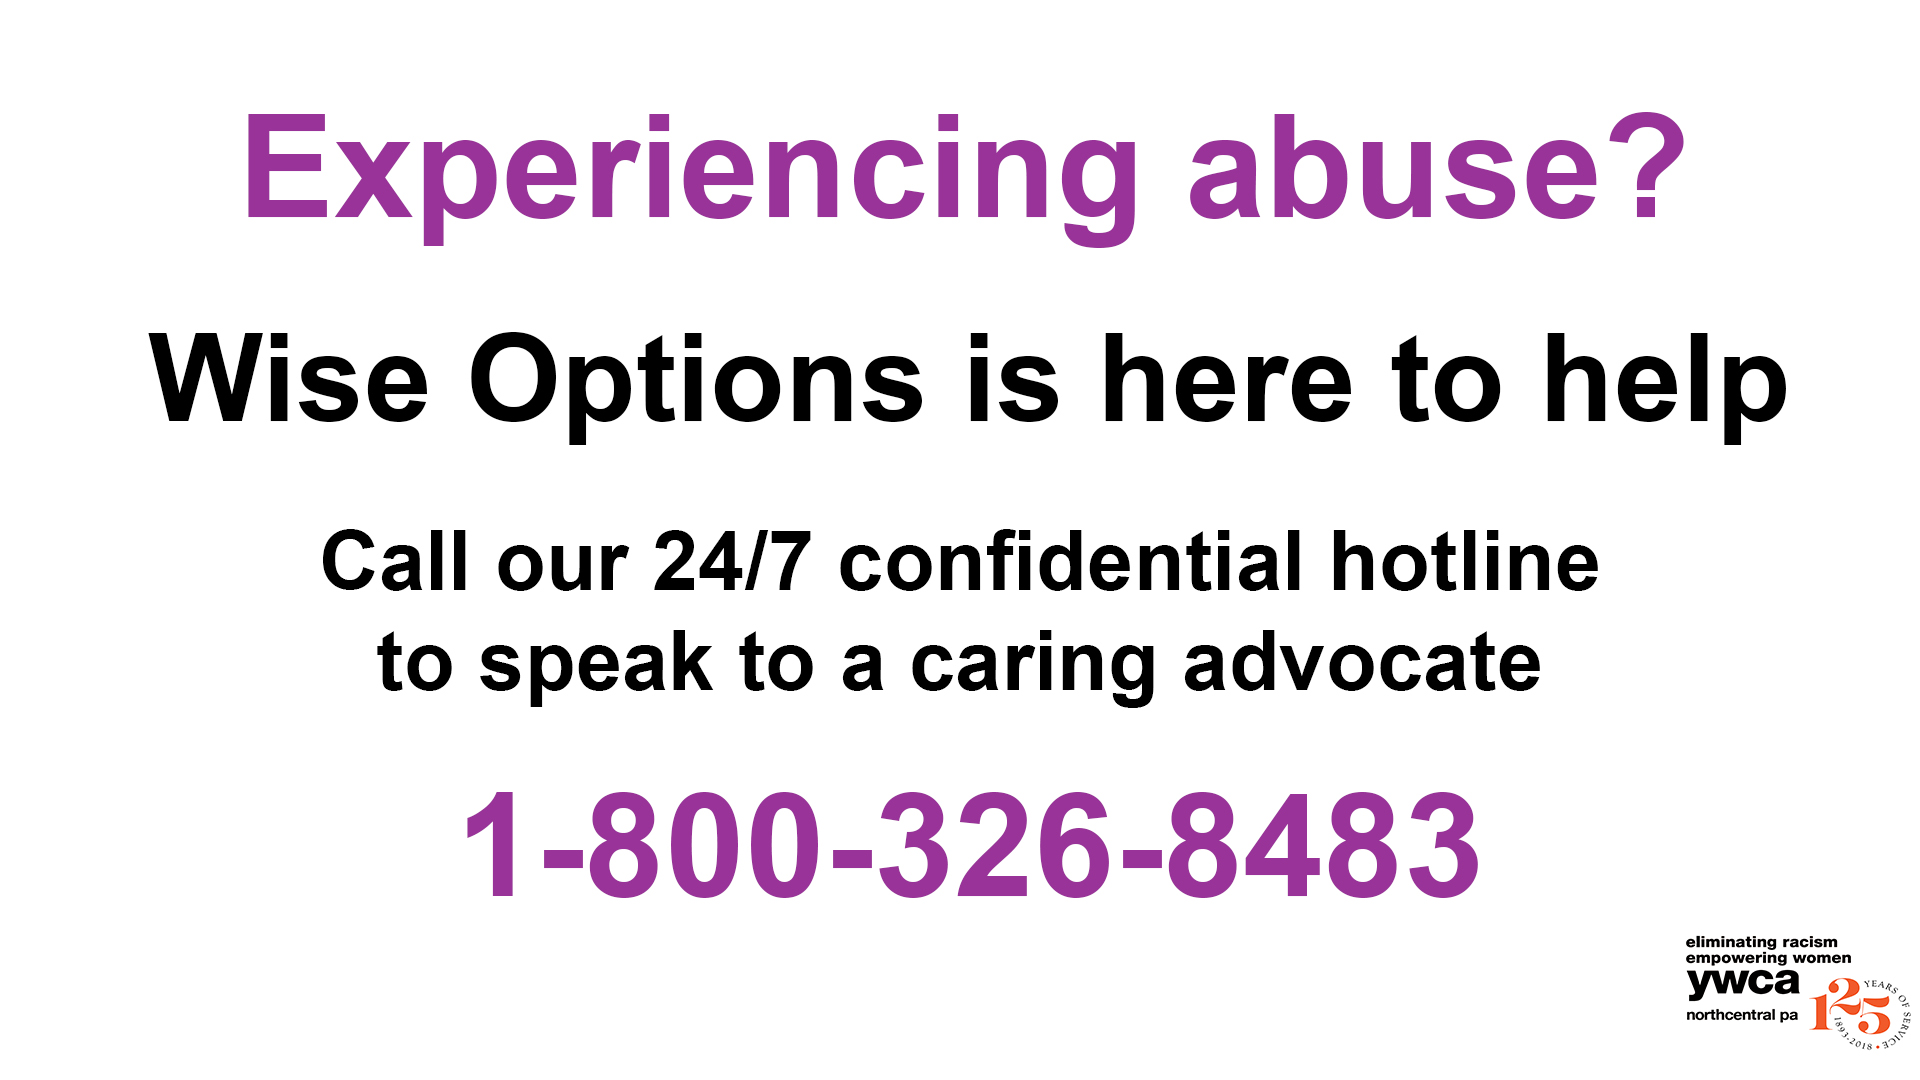 Experiencing abuse? Call Wise Options now!